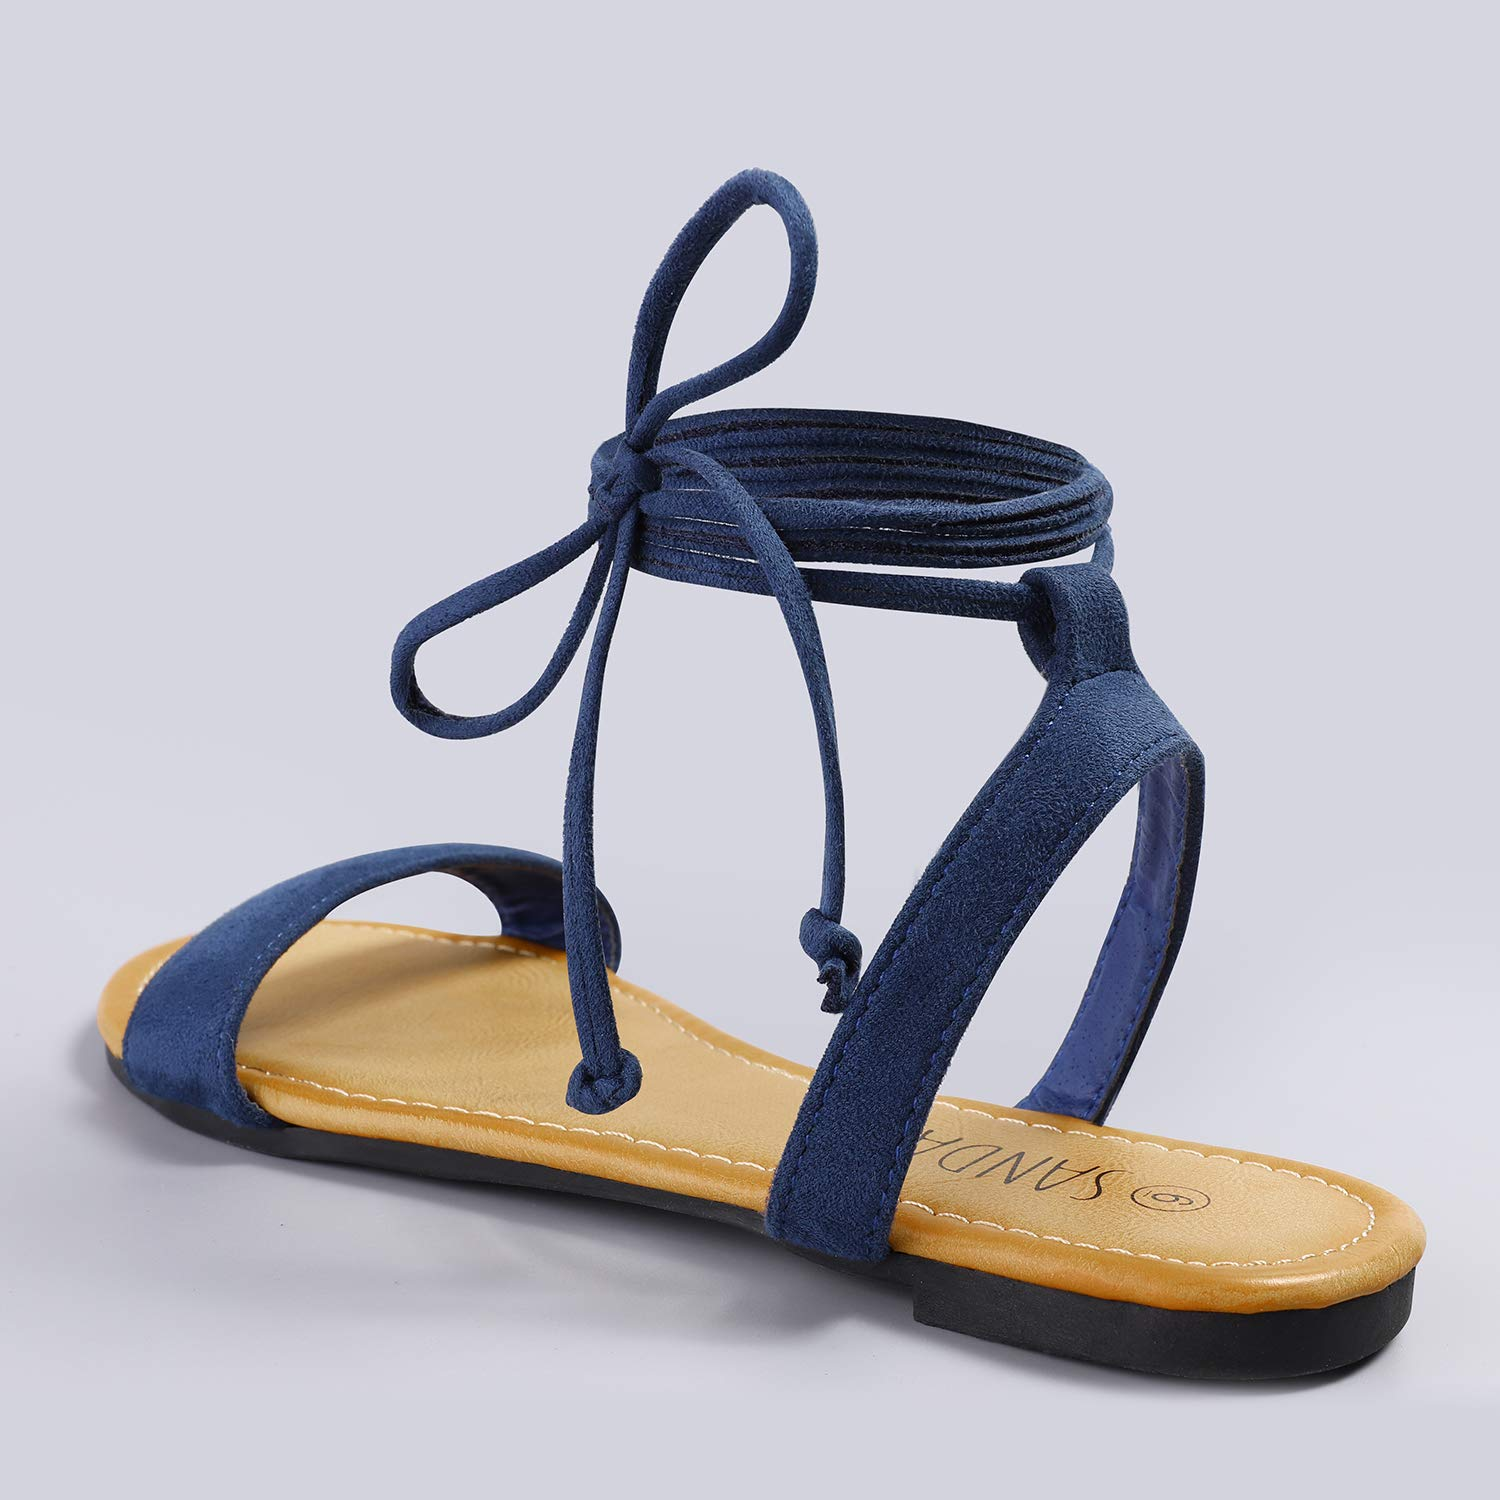 692680e76 SANDALUP Tie Up Ankle Strap Flat Sandals for Women  1541004952 ...